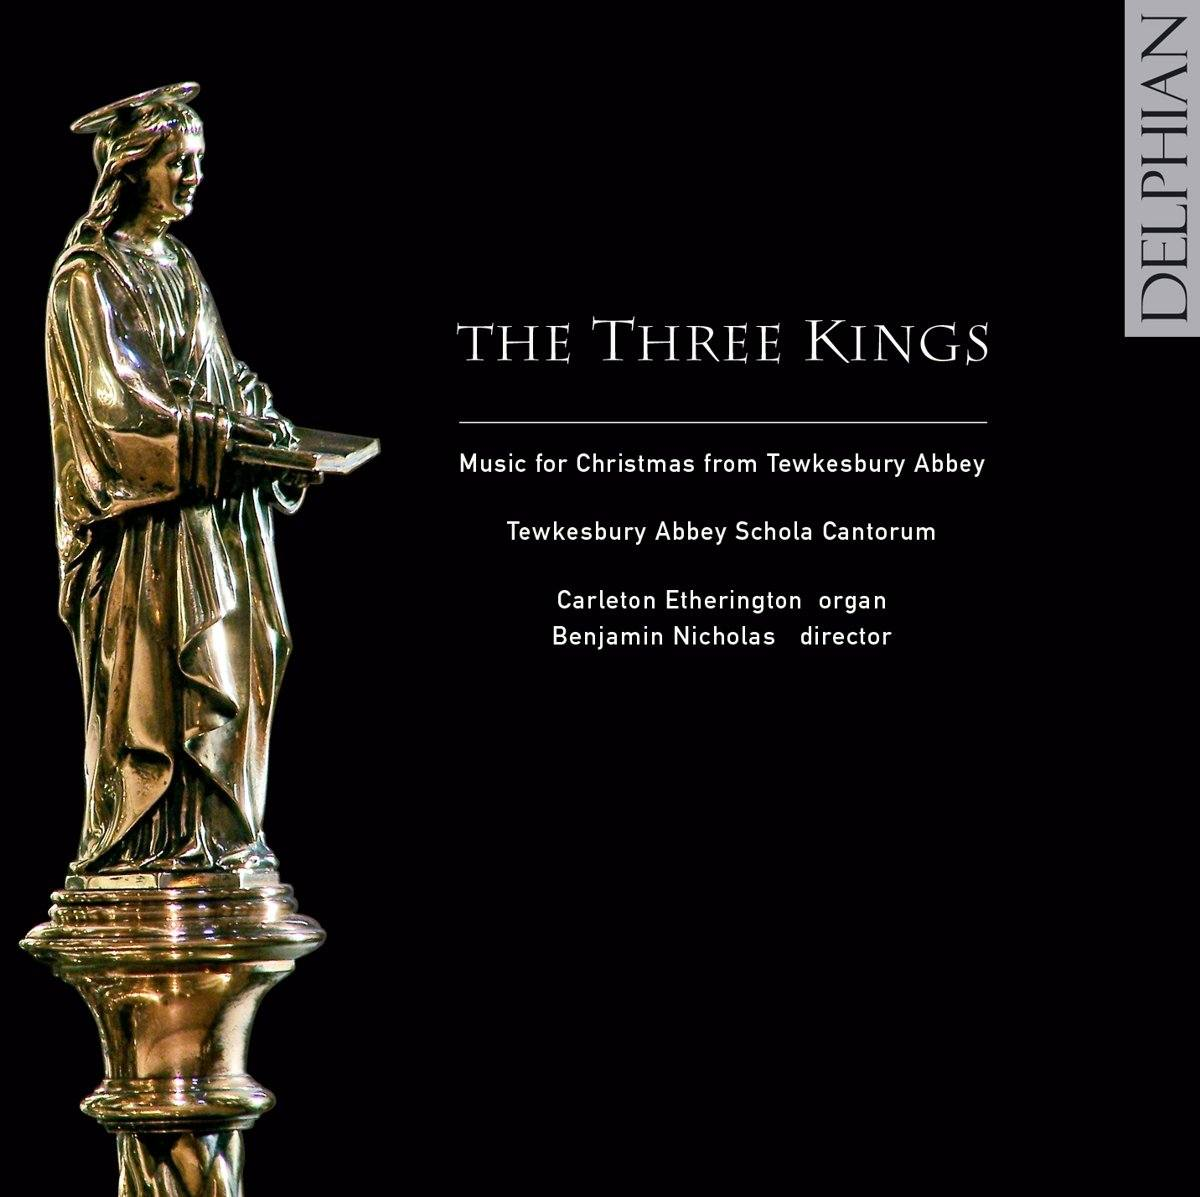 The Three Kings: music for Christmas from Tewkesbury Abbey CD Delphian Records